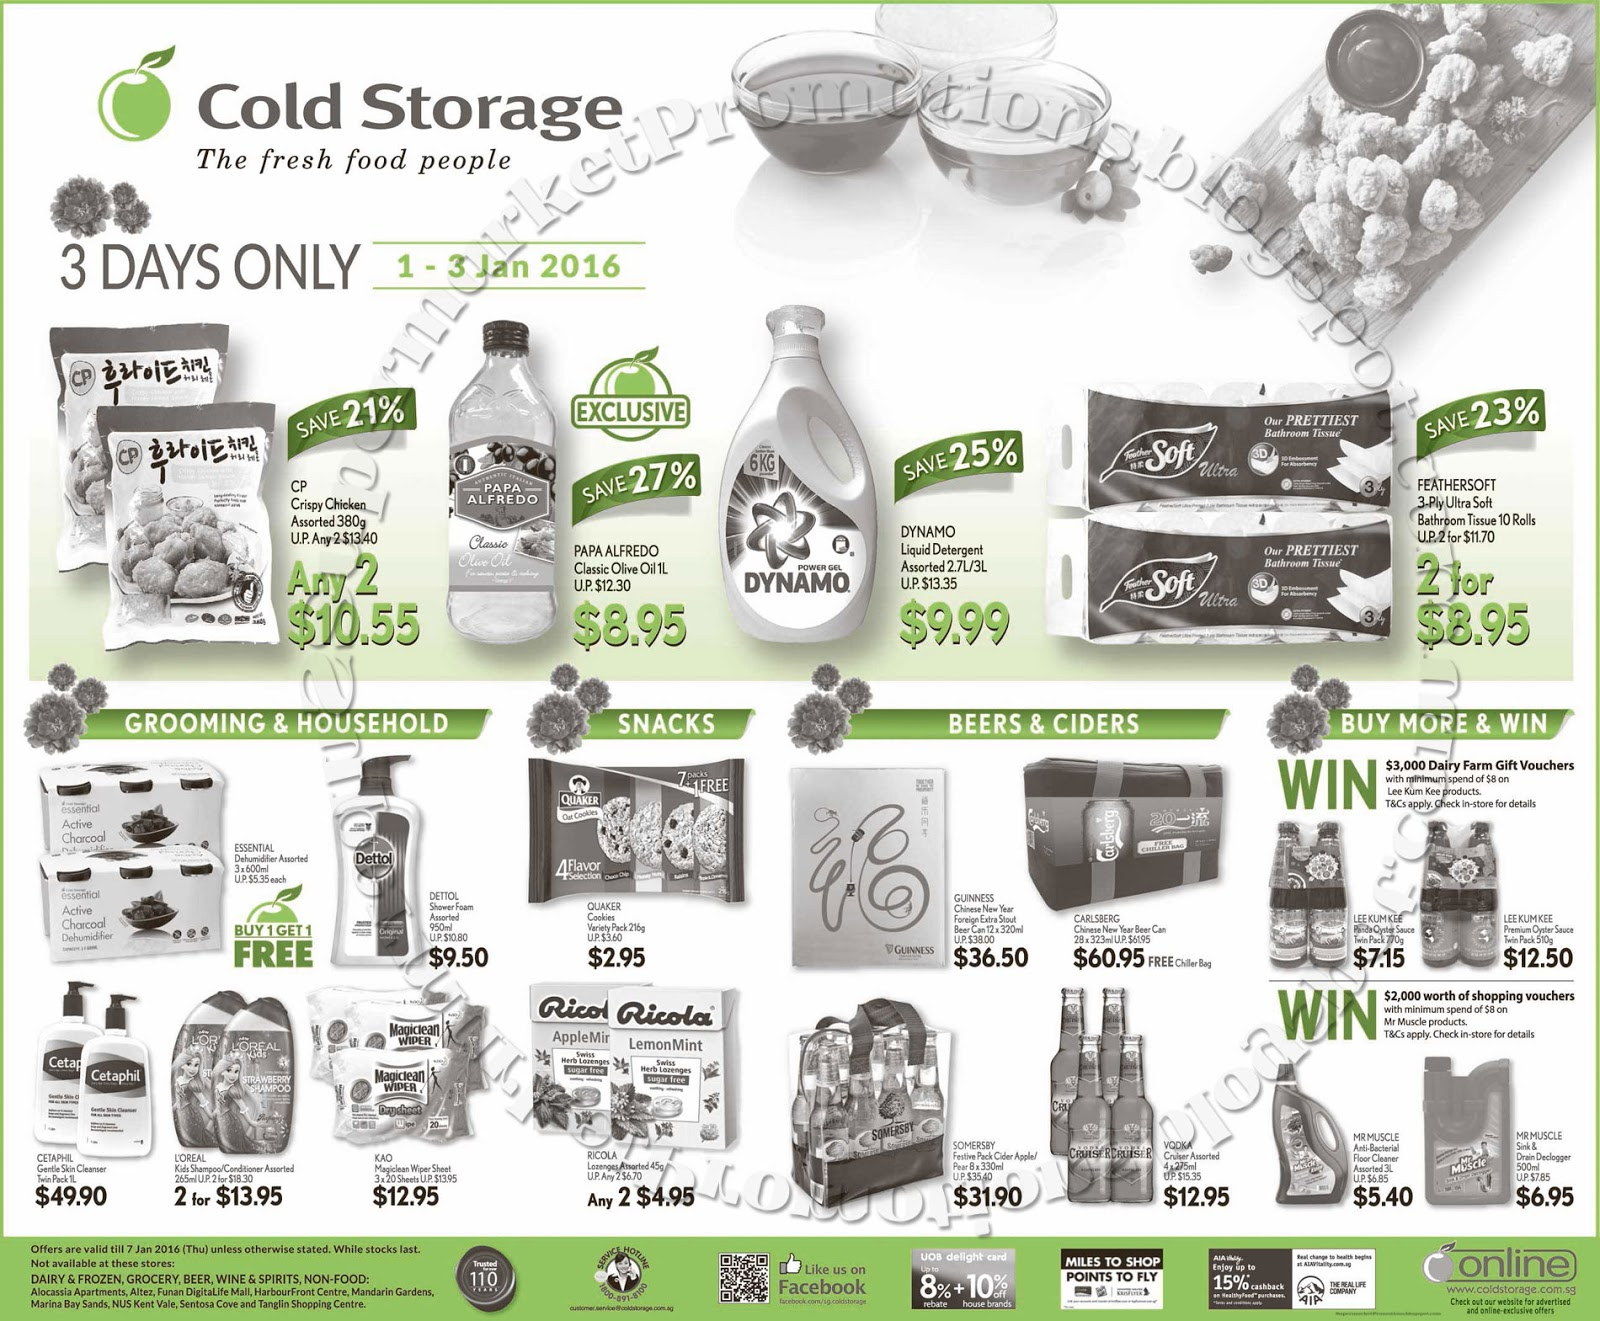 Cold storage dolce gusto promotion